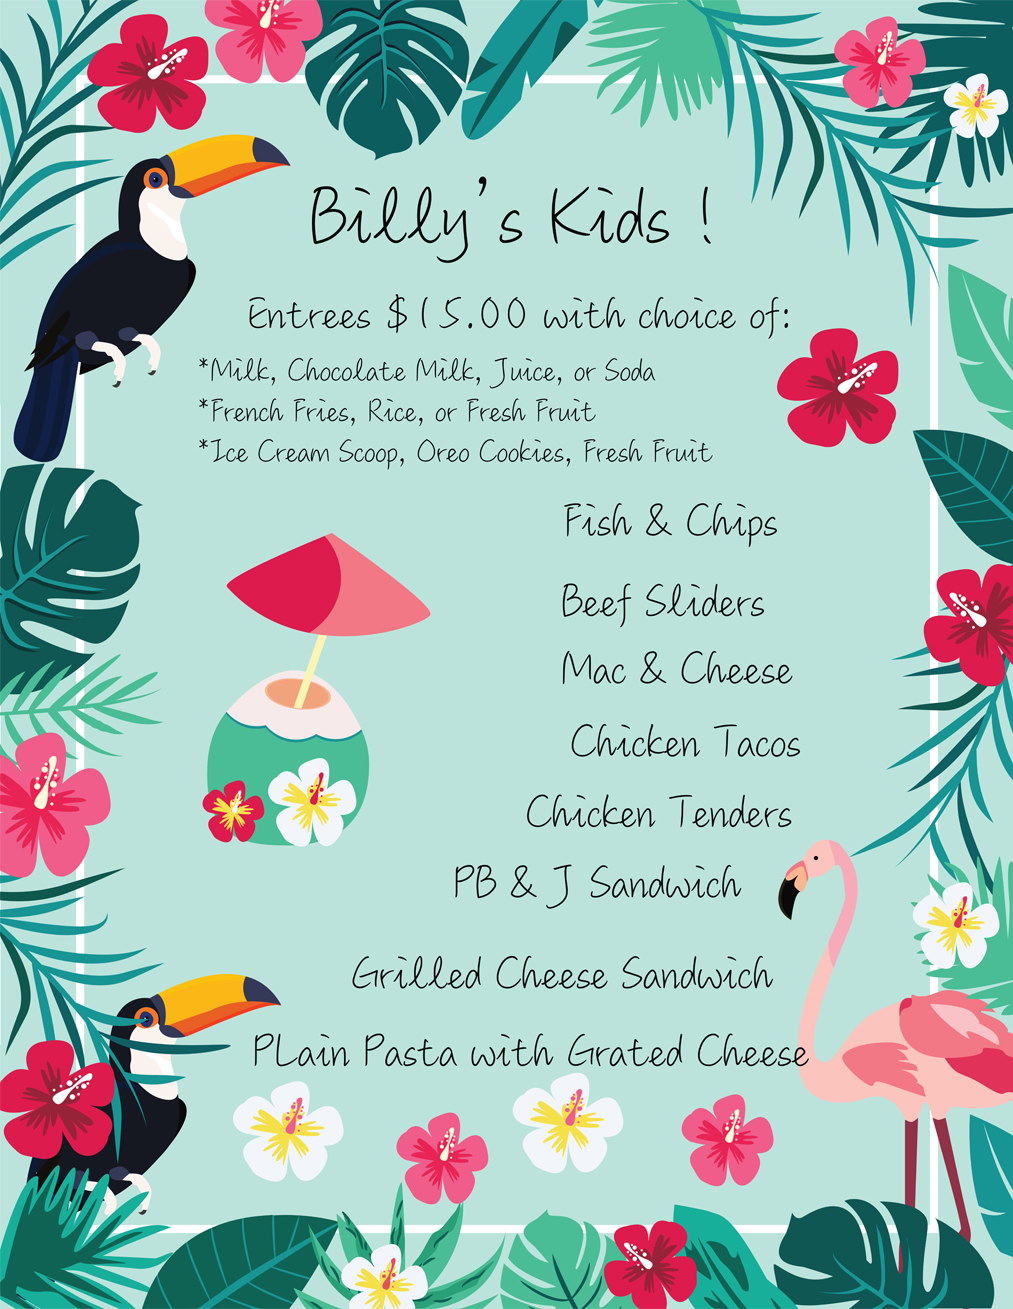 Billy's at the Beach, Newport Beach, California, Kids Menu.jpg